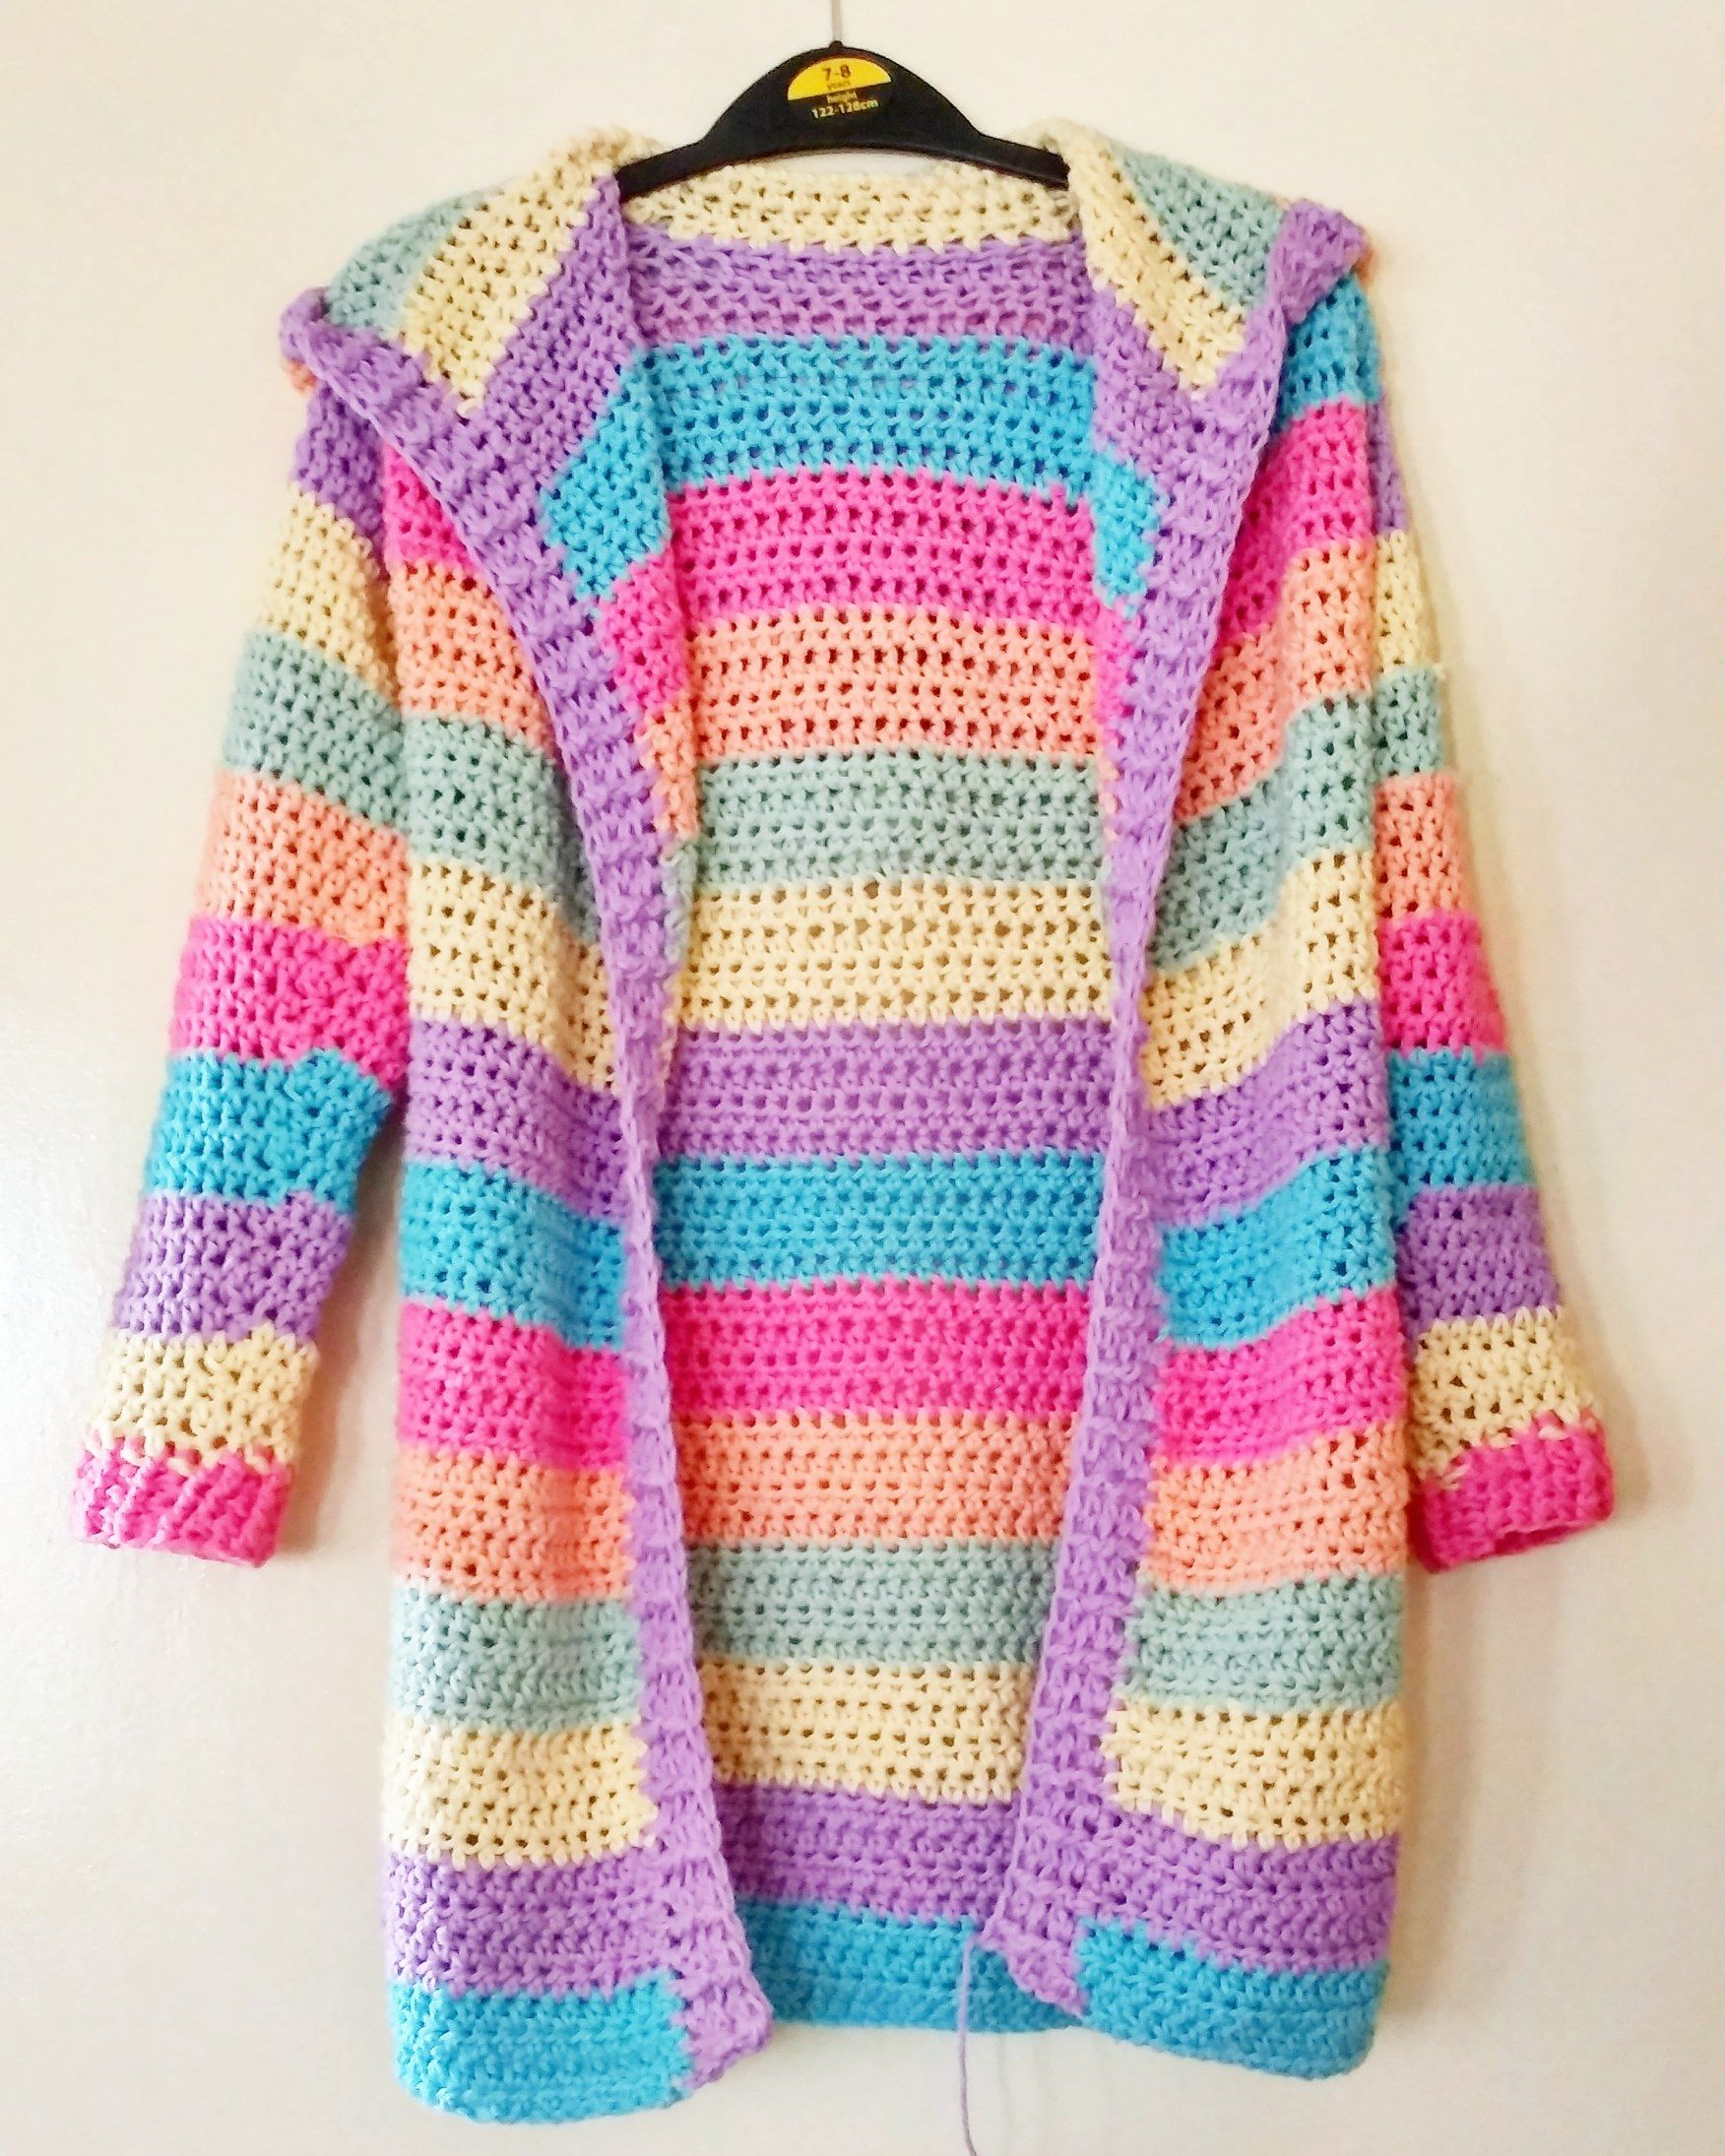 Child Size Hooded Cardigan pattern by Ashlea Konecny